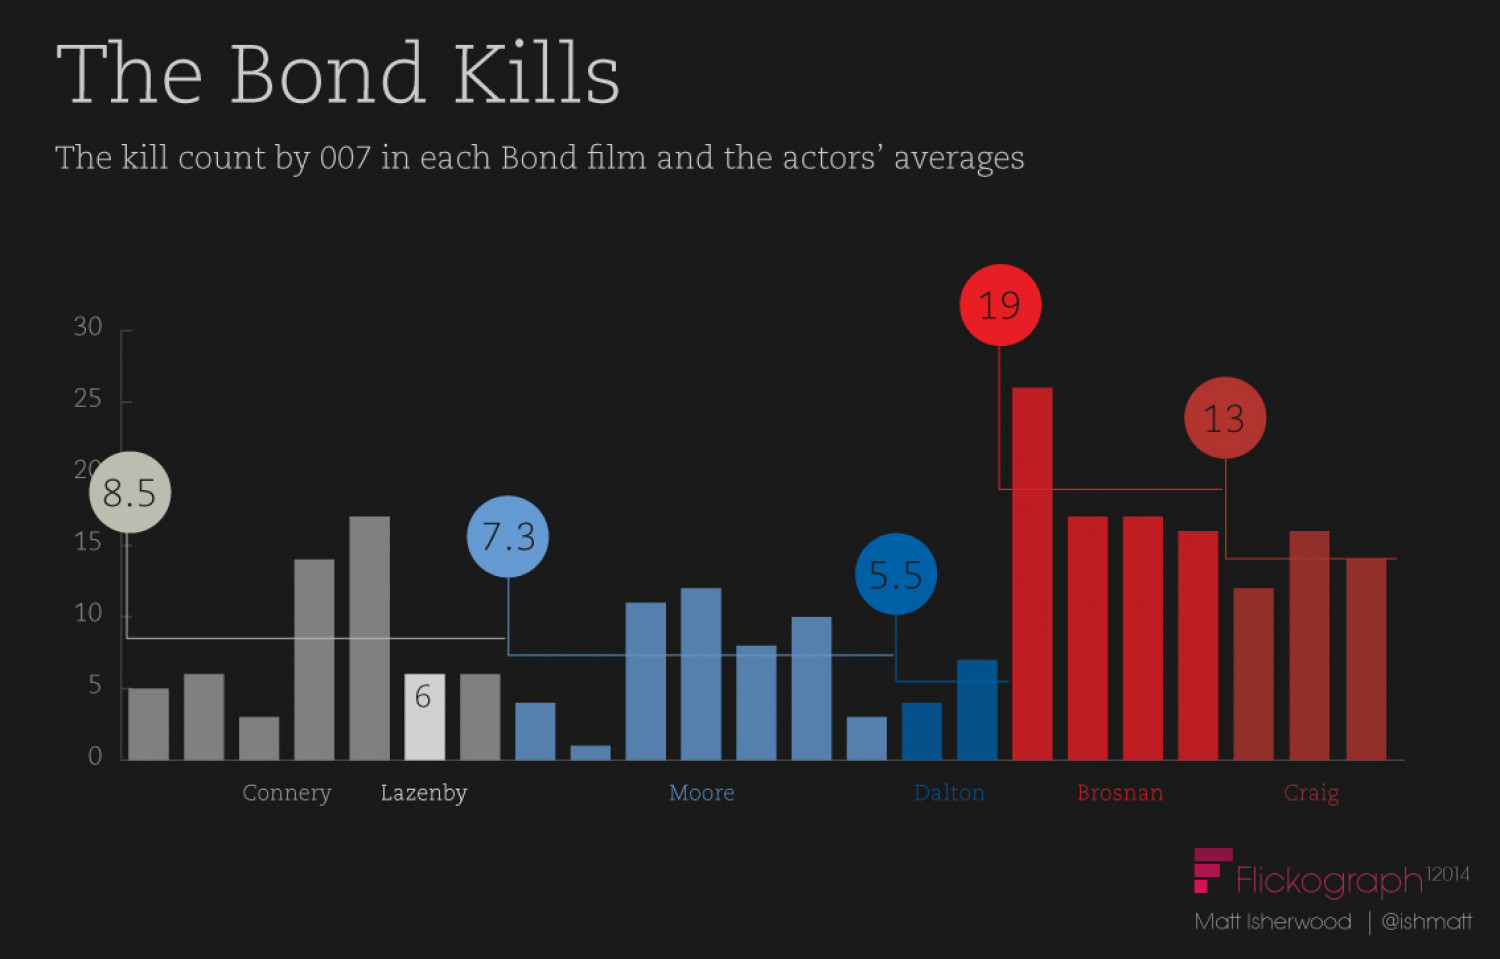 The Bond Kills Infographic